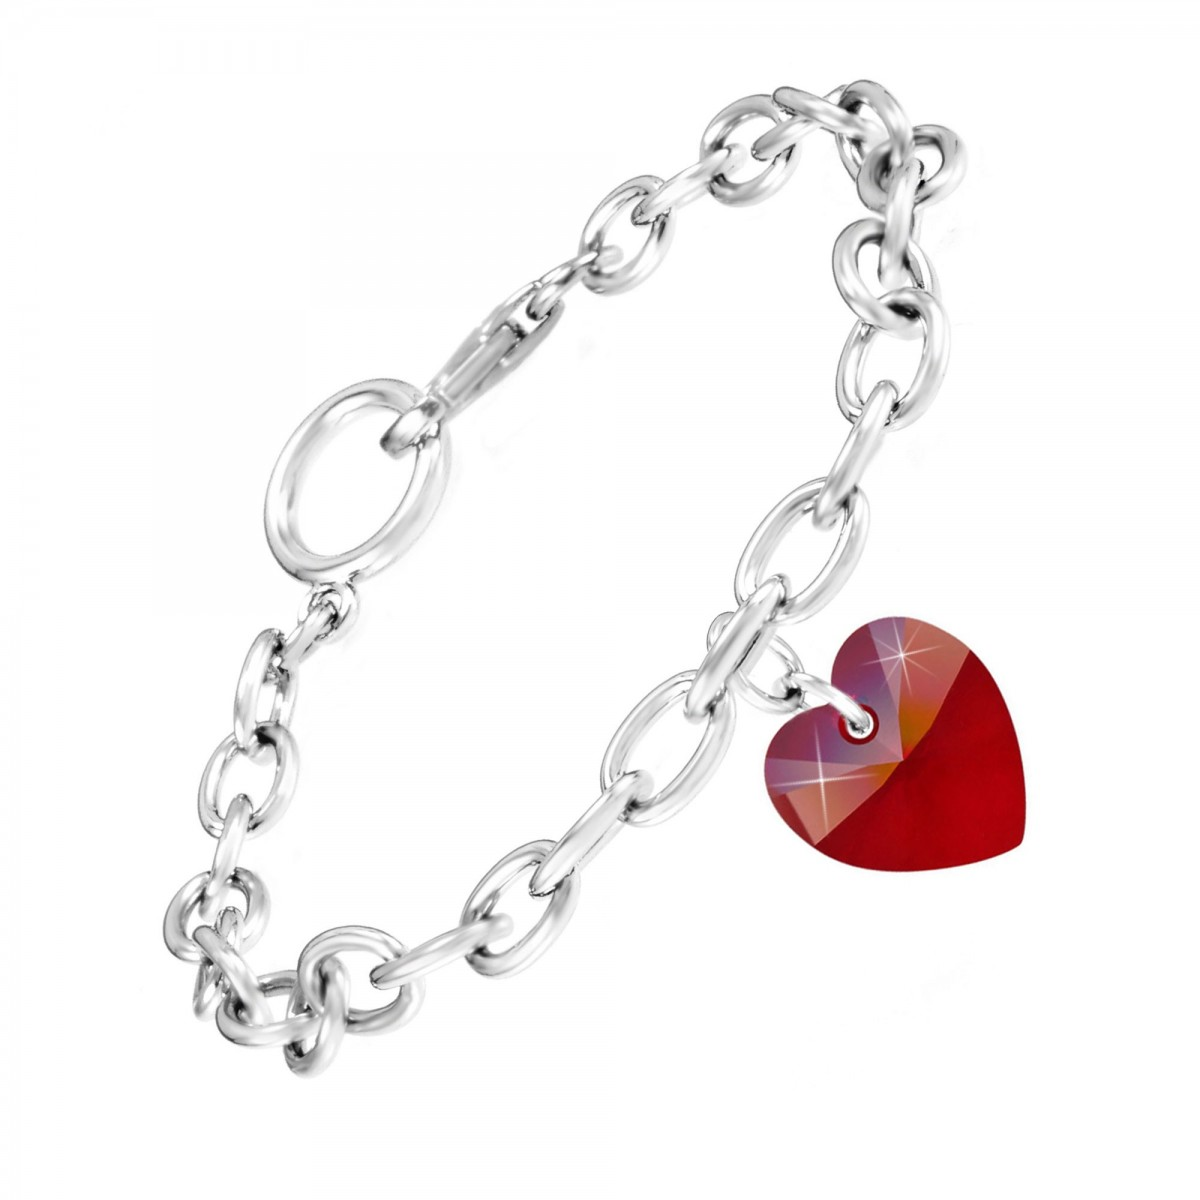 Bracelet argenté et coeur rouge made with Crystal from Swarovski rouge